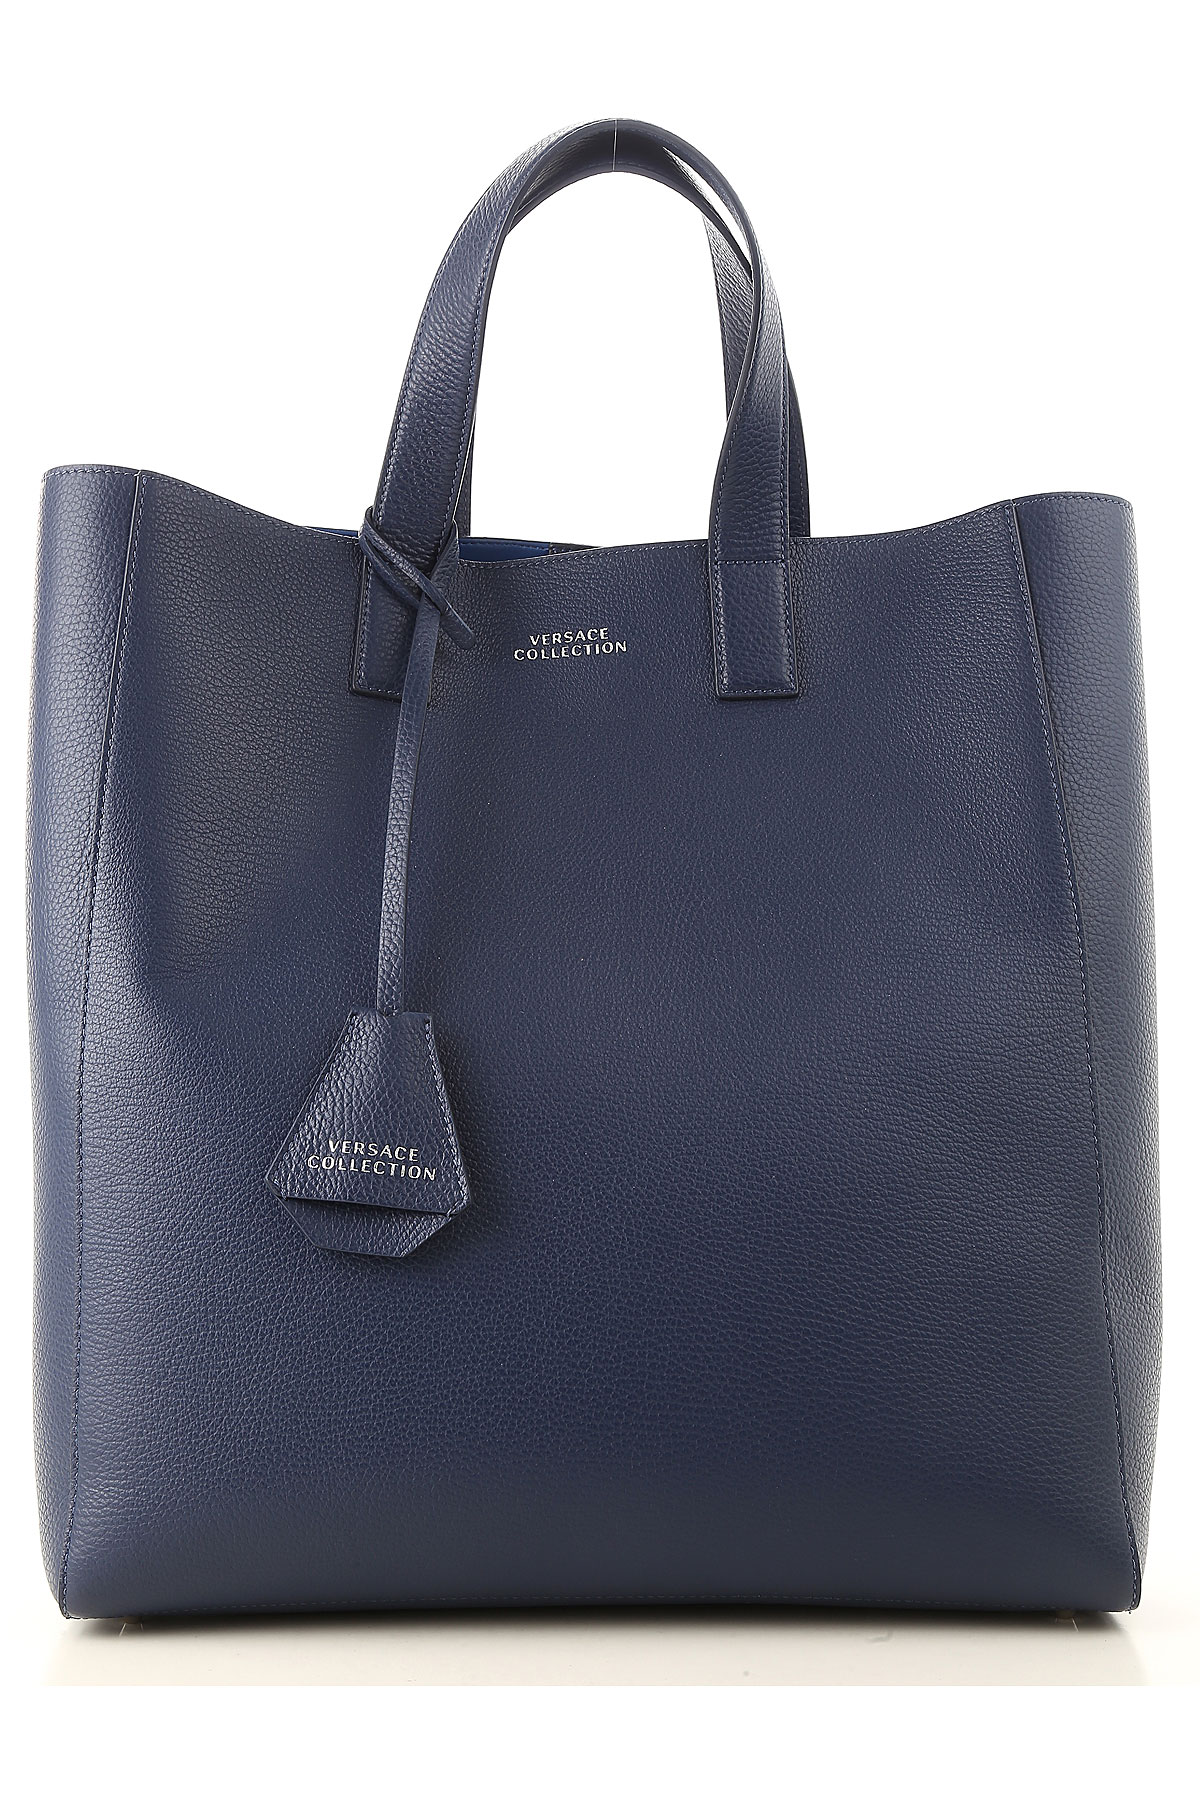 Image of Versace Totes, navy, Leather, 2017